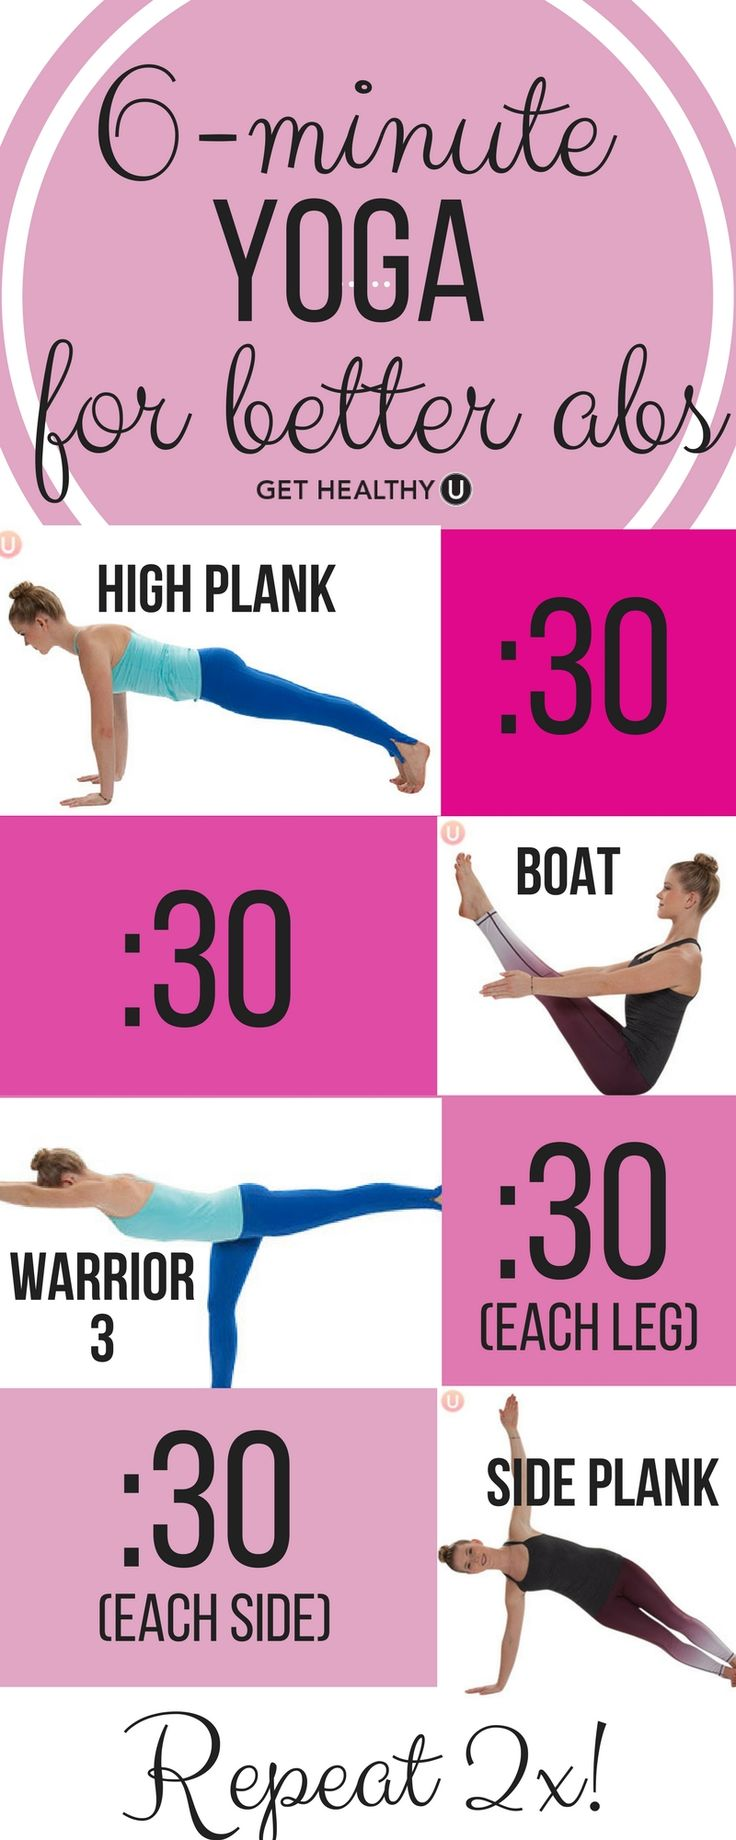 Did you know that yoga can also land you a strong core and enviable abs? Weu2019ve pulled four of the best core strength yoga poses and put them into a workout routine you can do anytime and anywhere in just 6 minutes! #weightloss